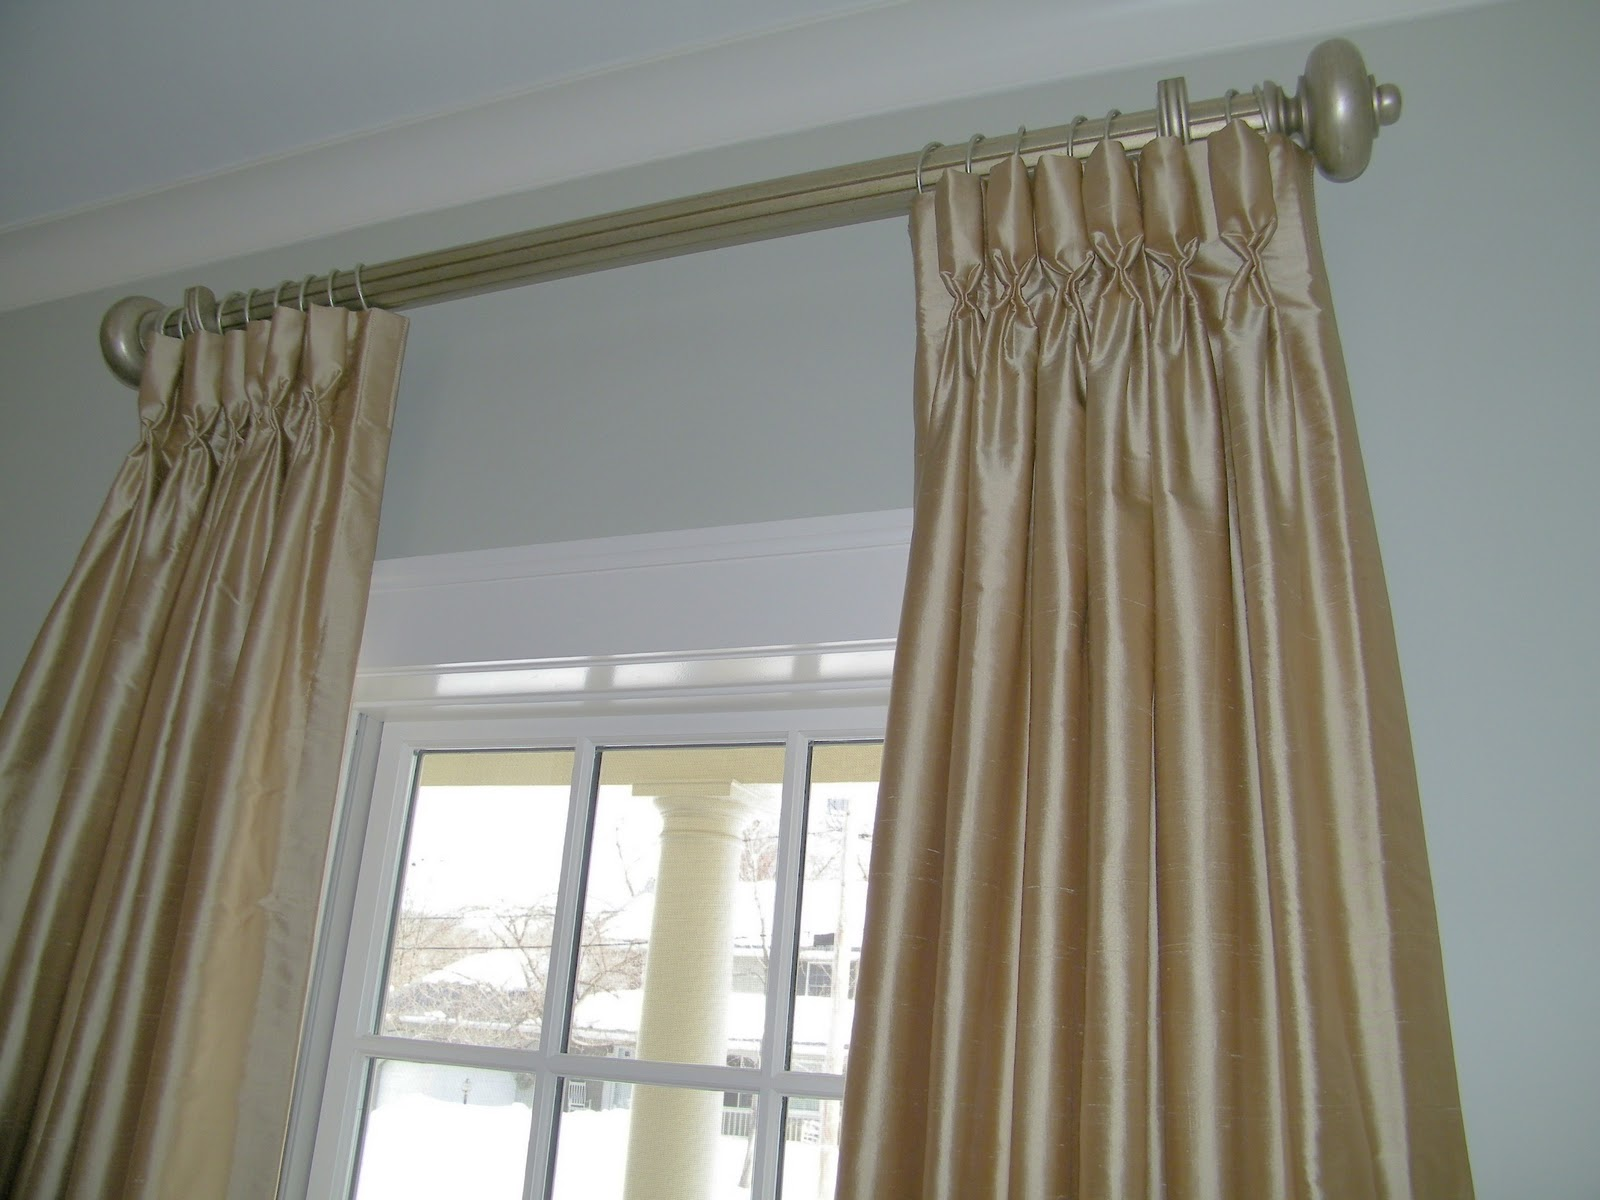 pinch how pleat hang on instructions to hanging a track pleated treatments window curtains